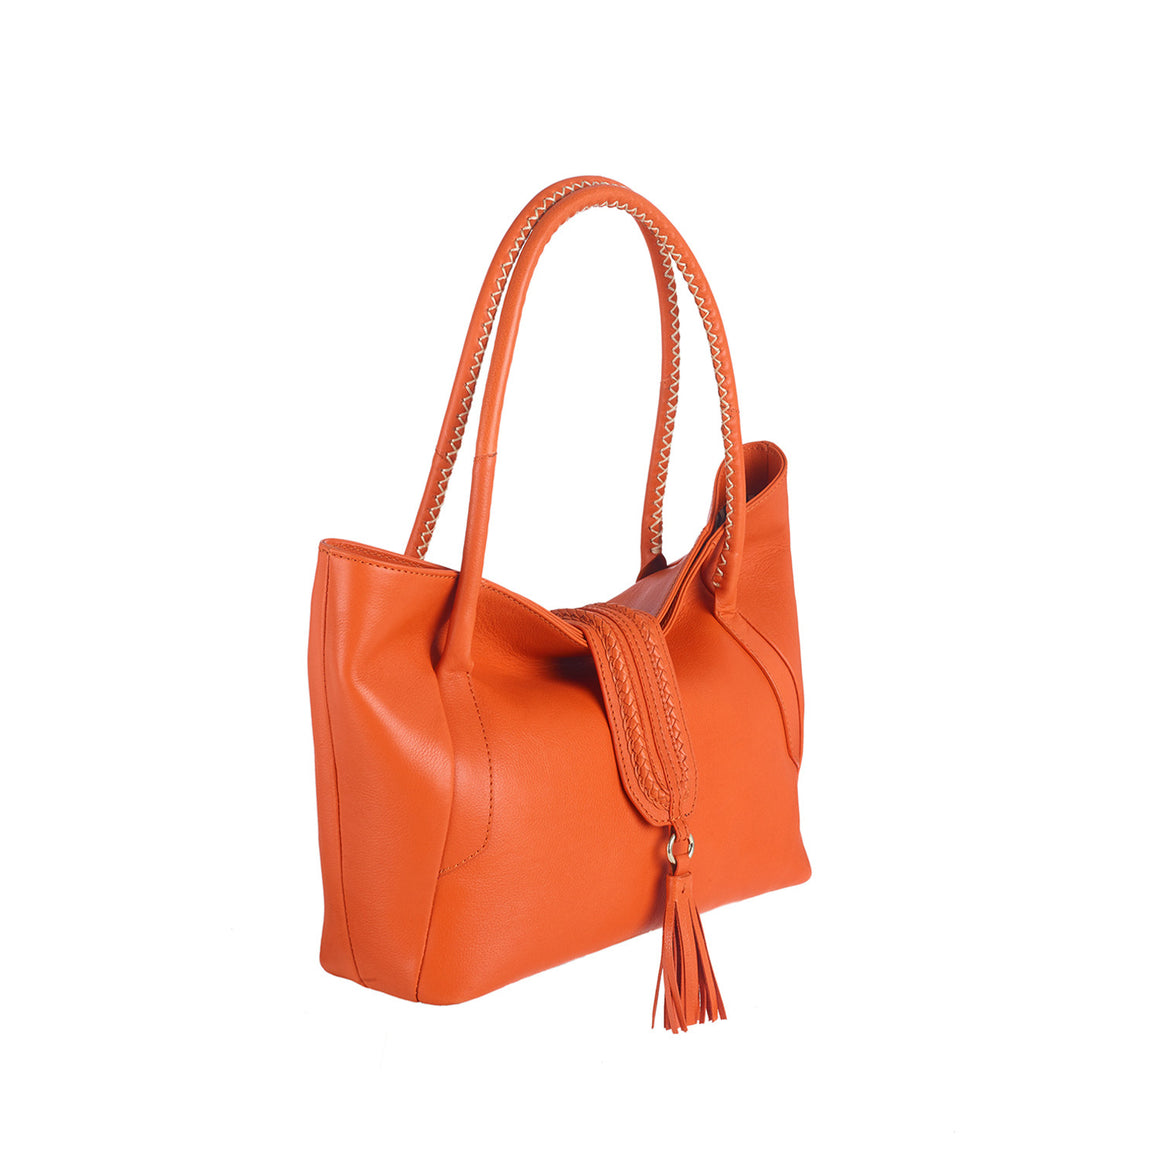 HH 0003 - TOHL ARETHA WOMEN'S SHOULDER BAG - ORANGE MELON